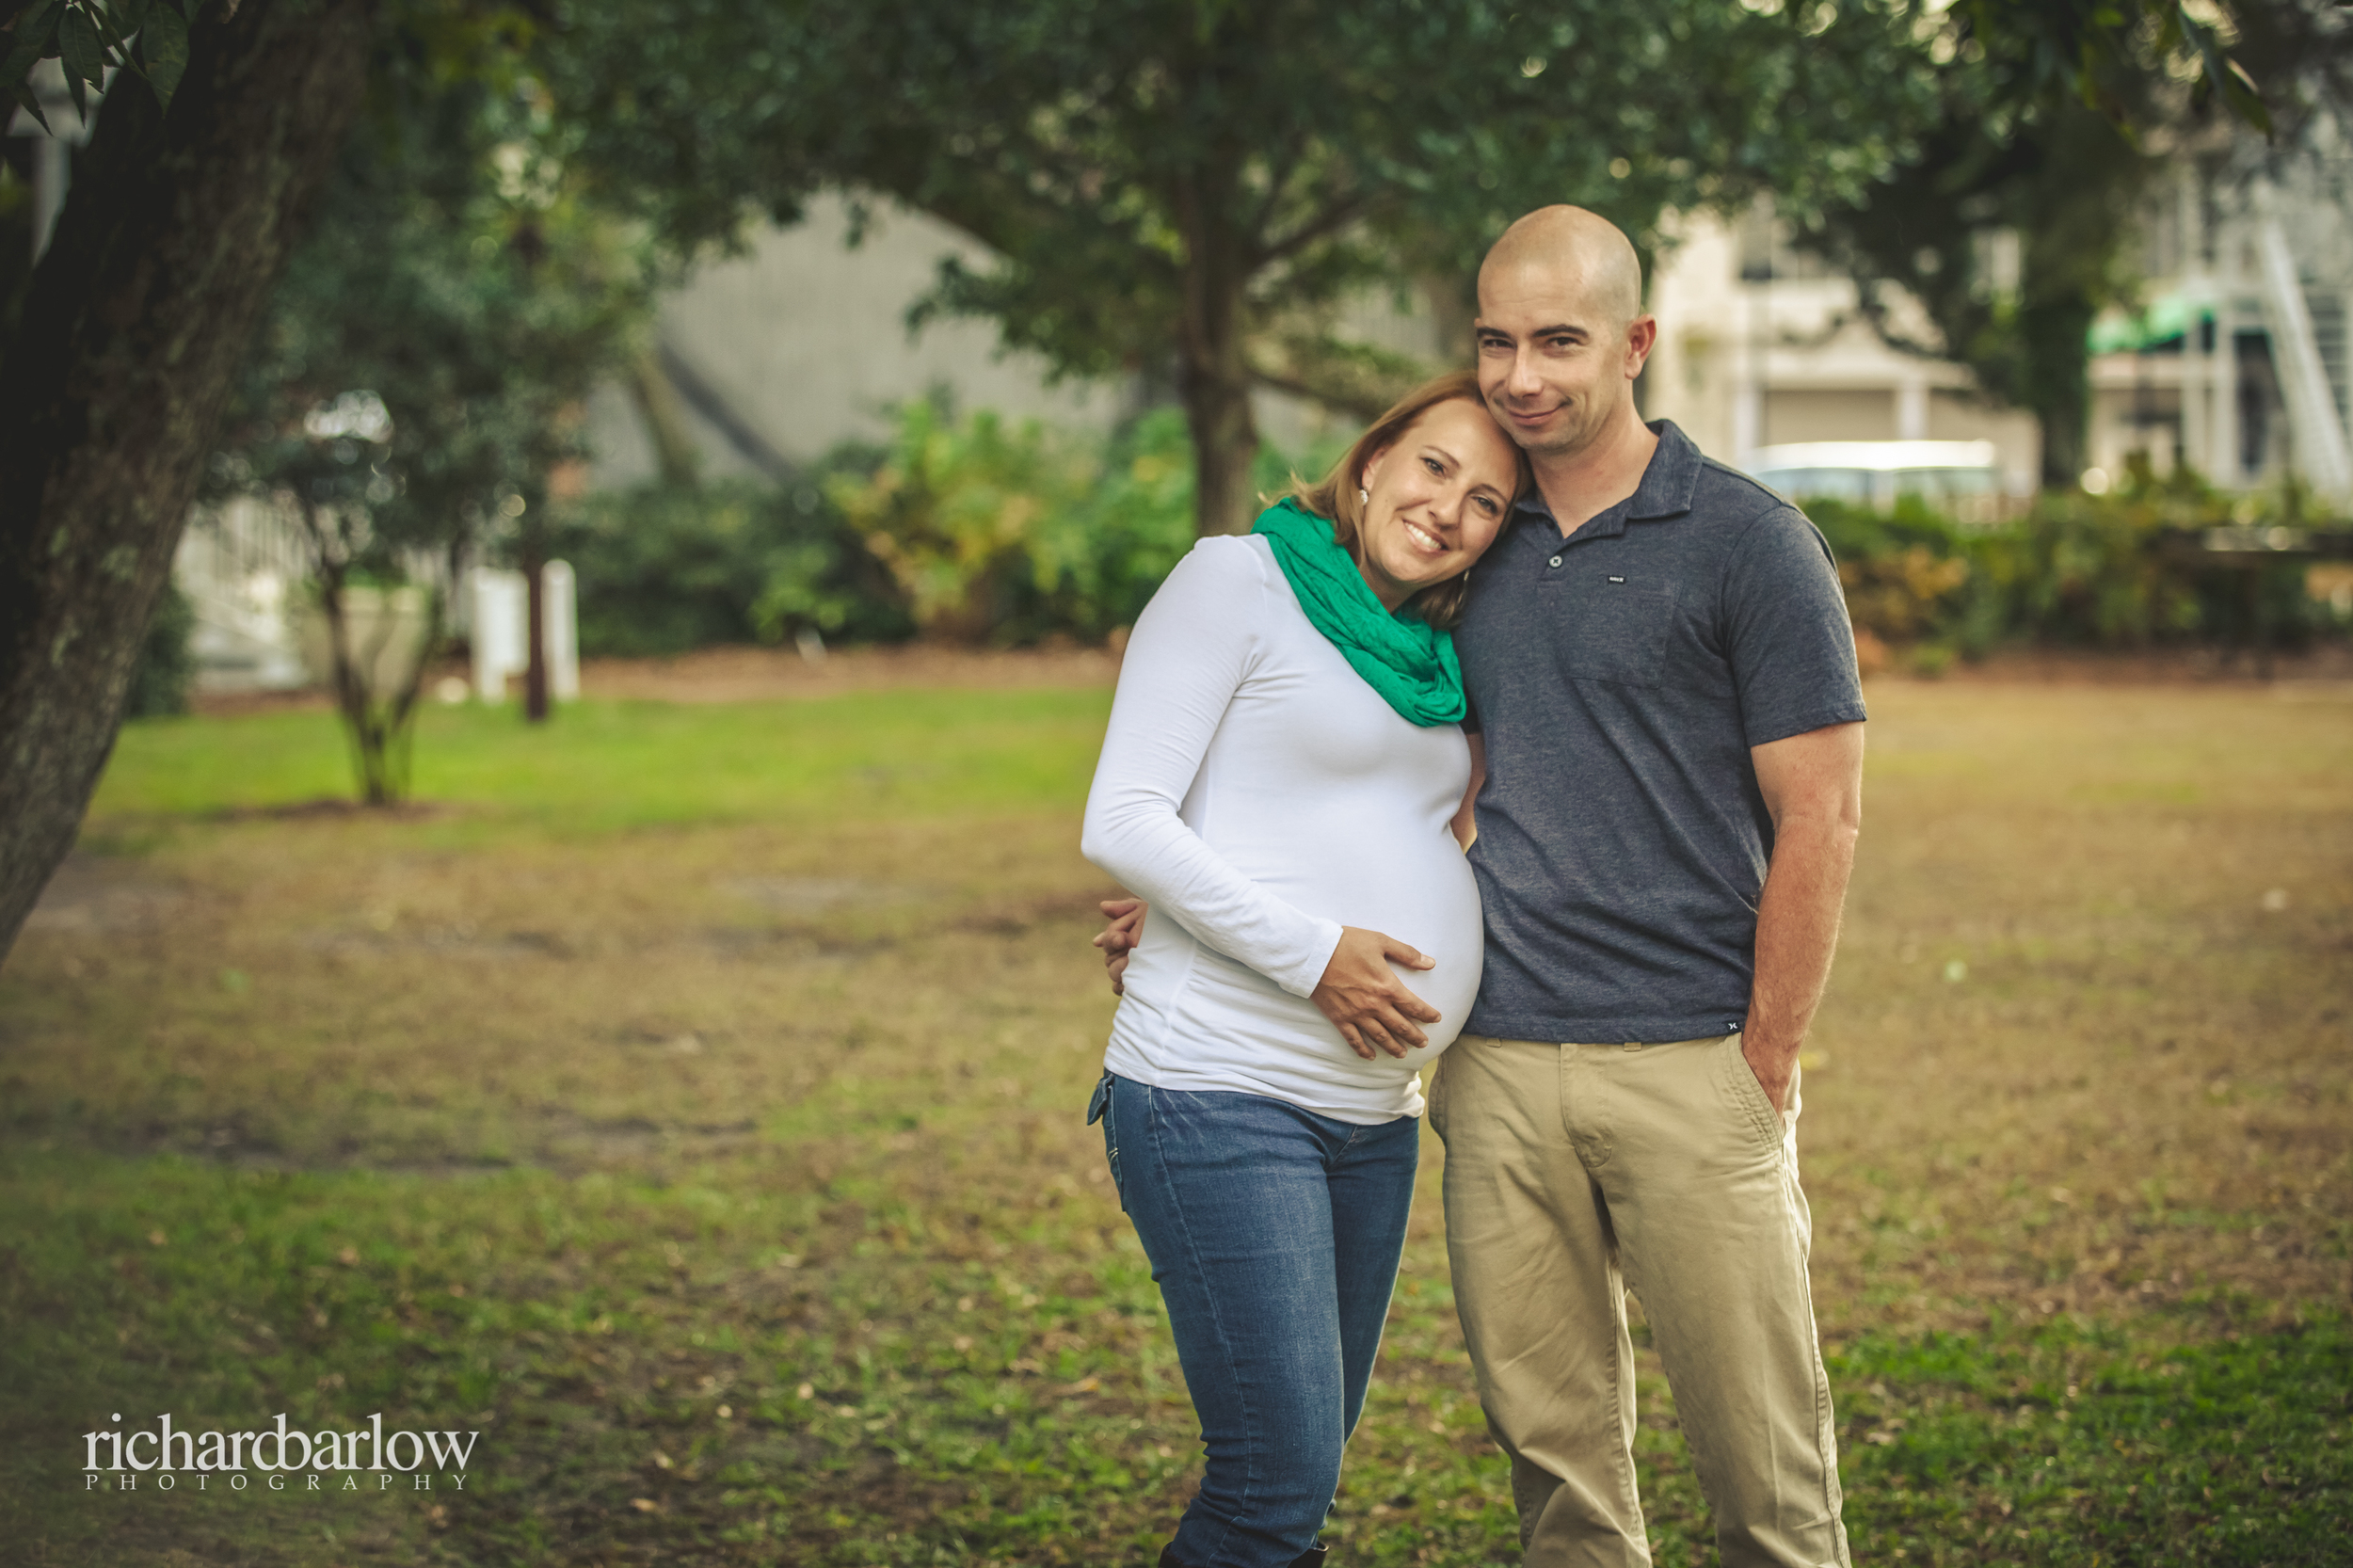 richard barlow photography - Sarah Maternity Session - Beaufort waterfront-7.jpg